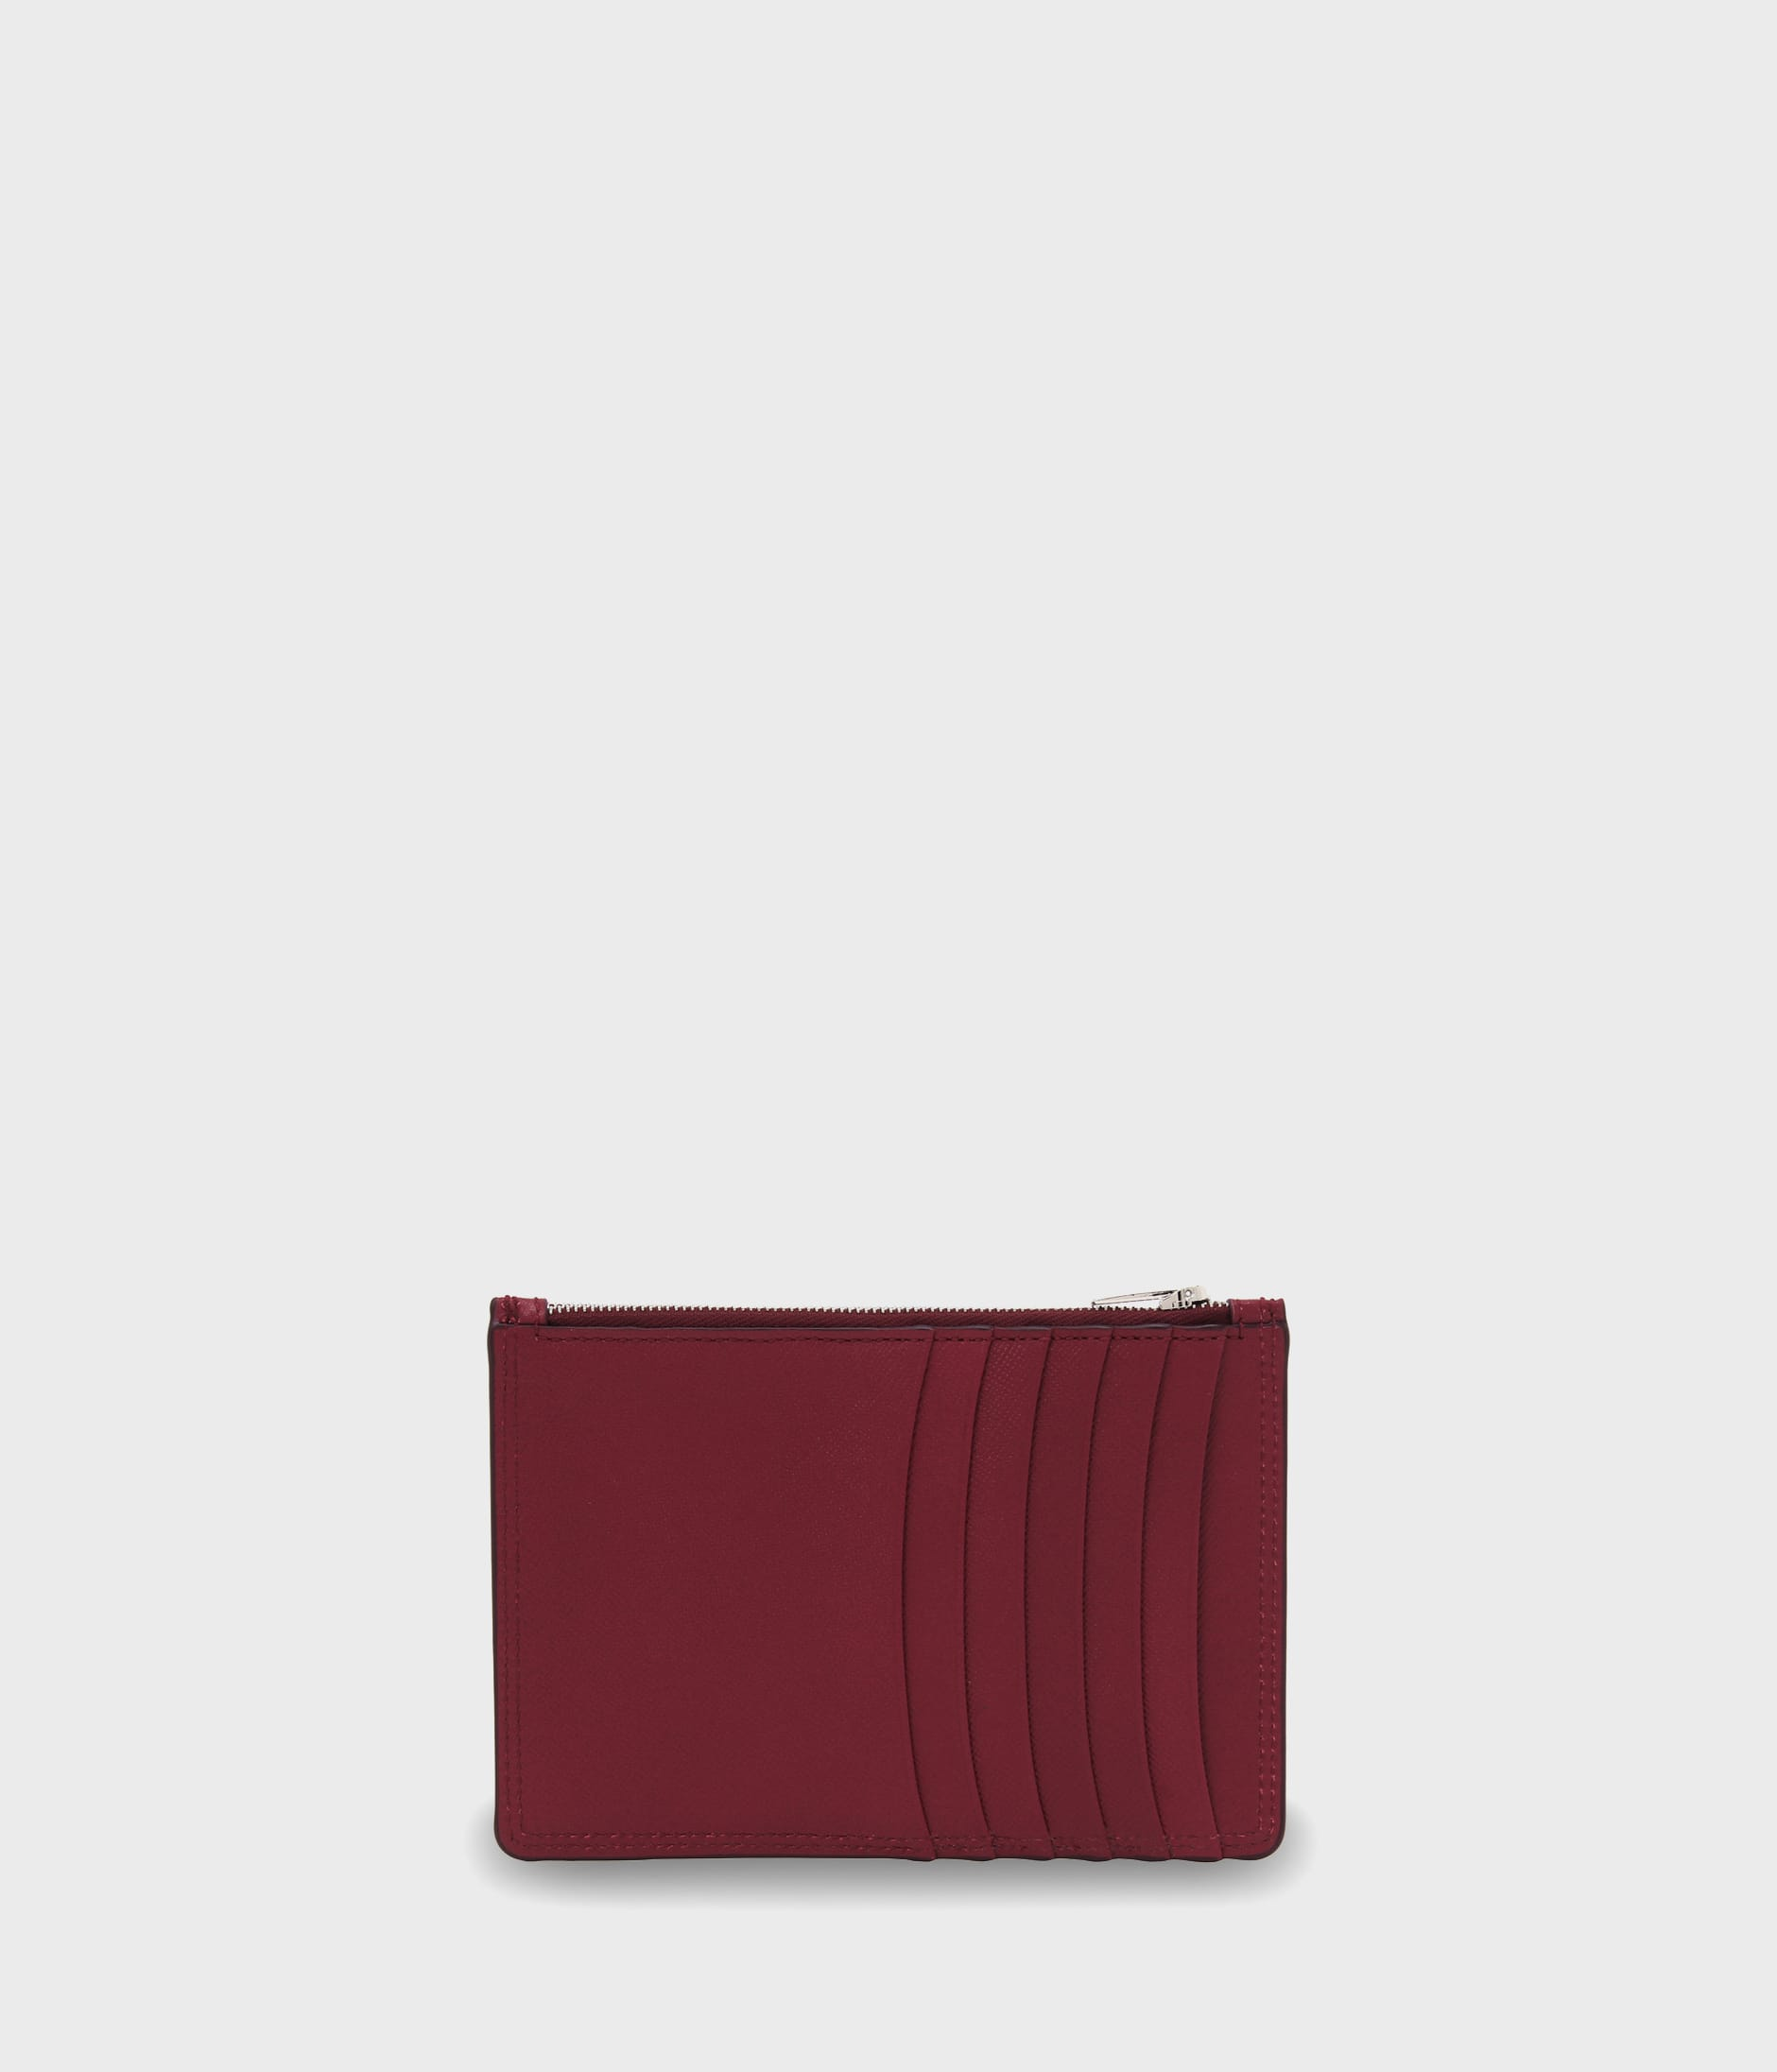 ZIP POUCH CARD HOLDER 詳細画像 BURGUNDY 2